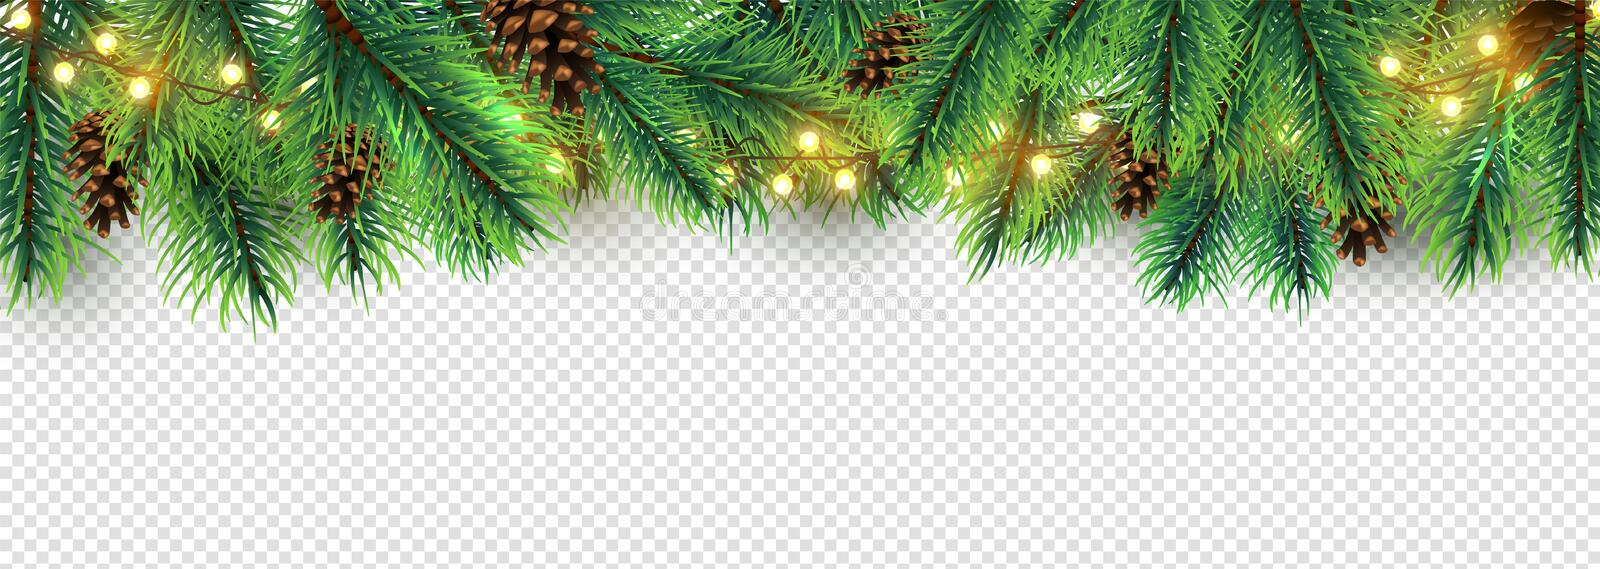 Christmas border. Holiday garland isolated on transparent background. Vector Christmas tree branches, lights and cones. Festive banner design. Christmas branch stock illustration